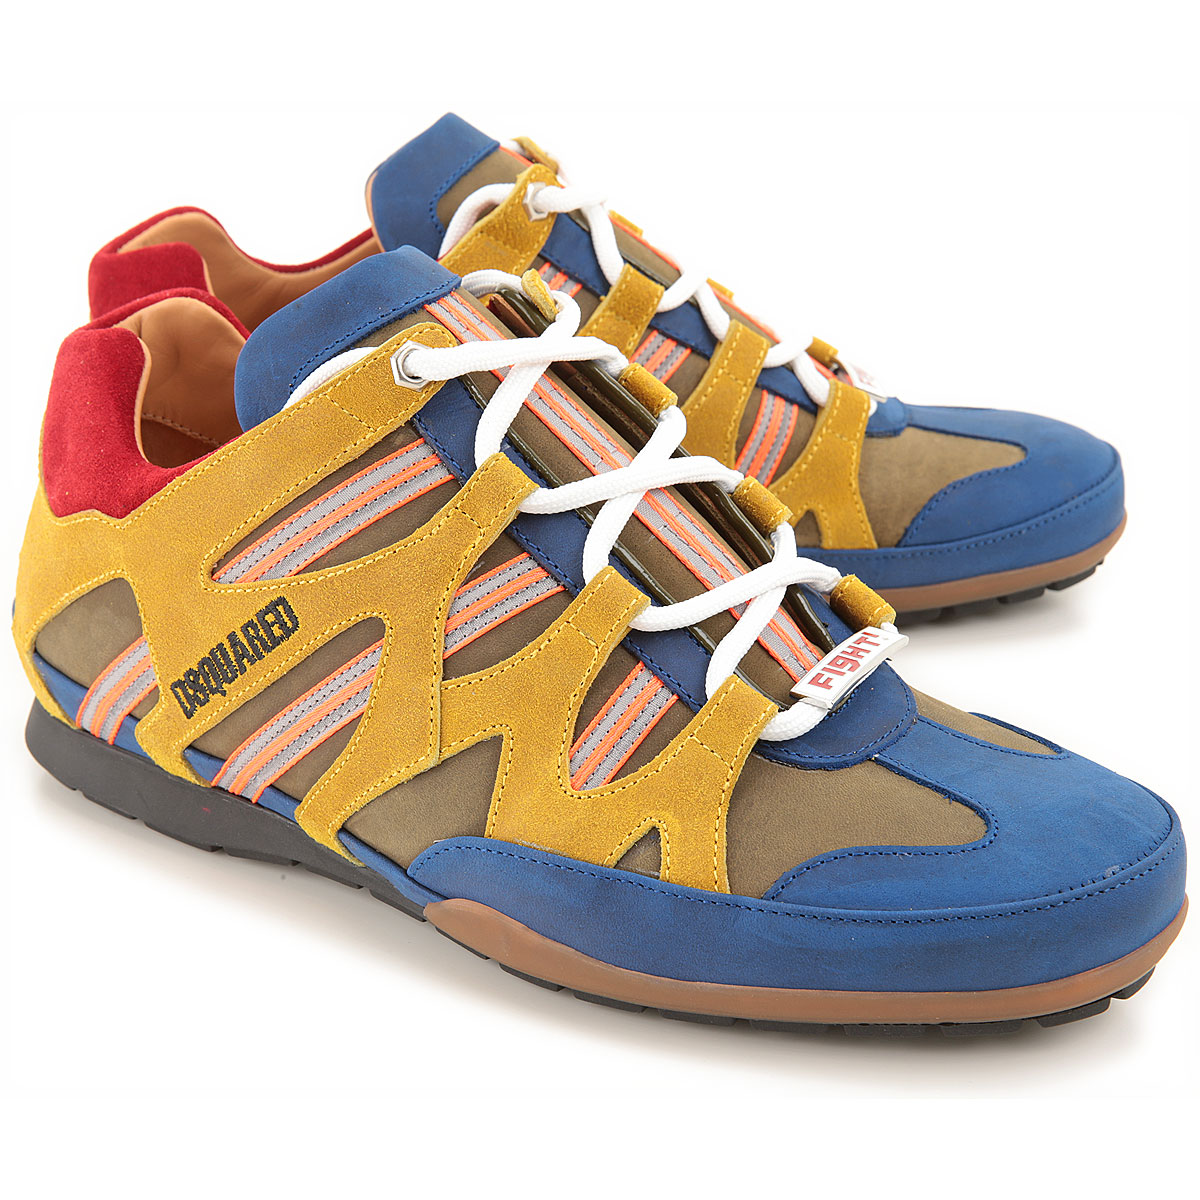 Dsquared2 Sneakers for Men in Outlet Mustard USA - GOOFASH